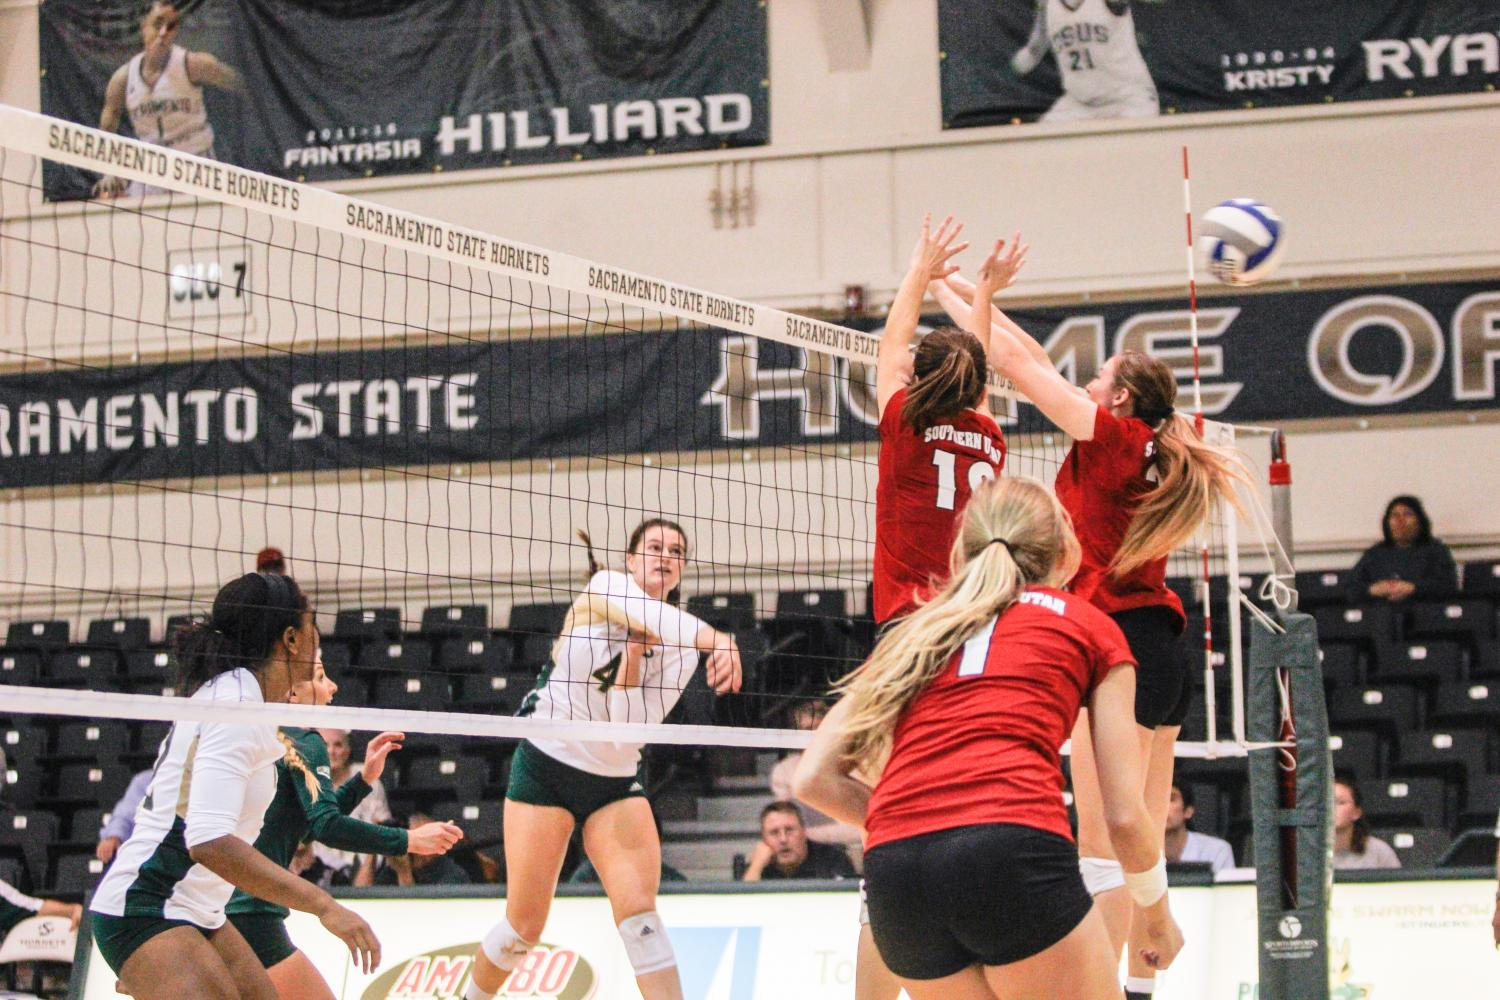 Sacramento State junior outside hitter Mikaela Nocetti records a kill in the second set against Southern Utah Thursday, Oct. 12, 2017 at Colberg Court.